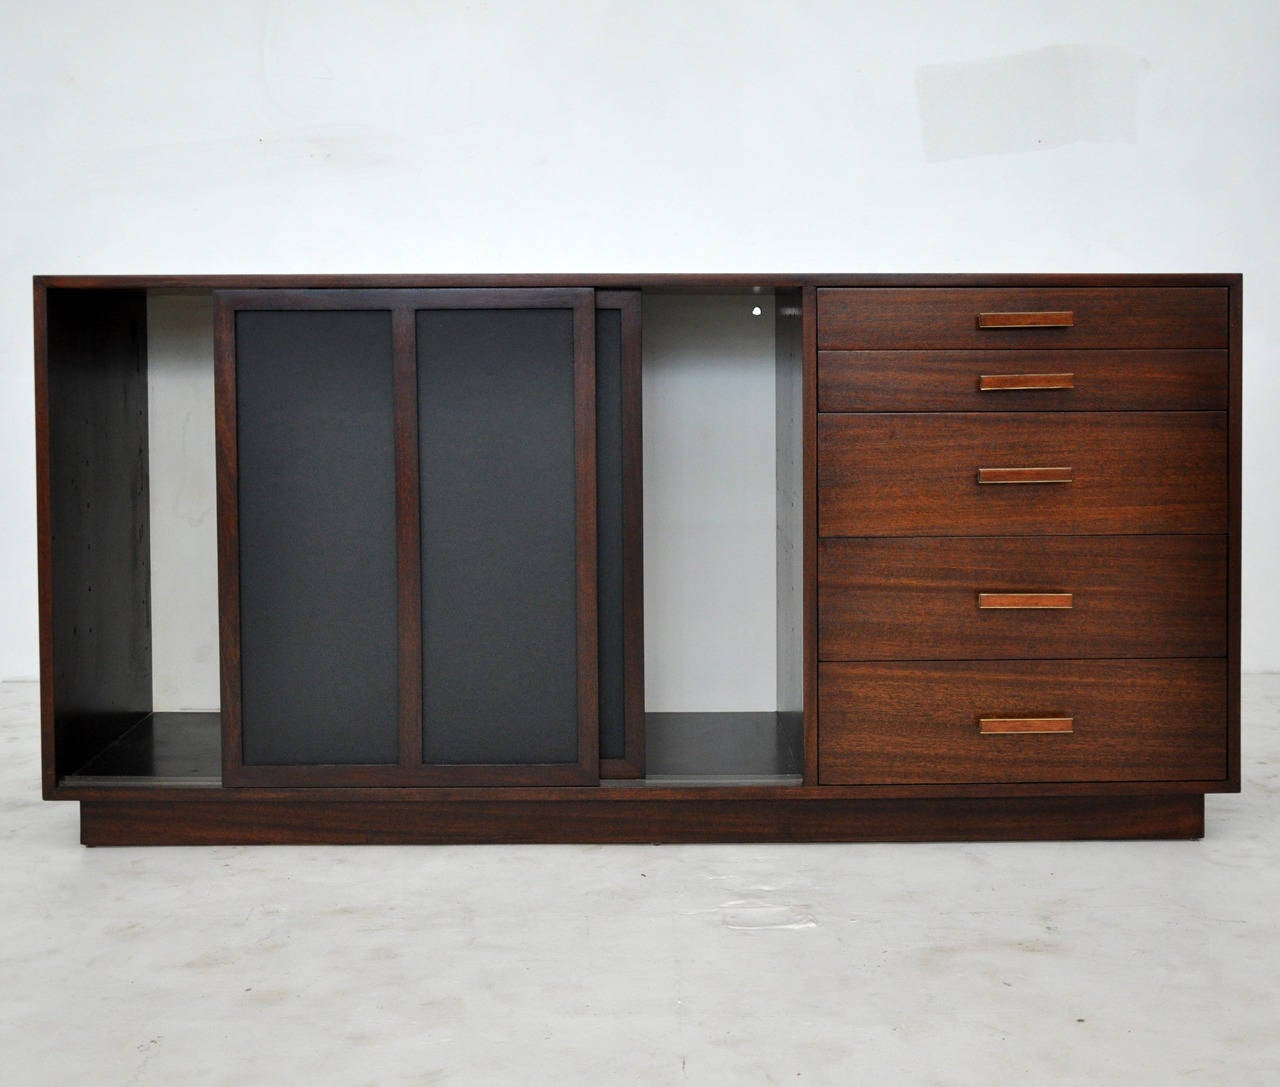 1087 #653928 Harvey Probber Credenza With Leather Doors At 1stdibs save image Harvey Doors 43271280